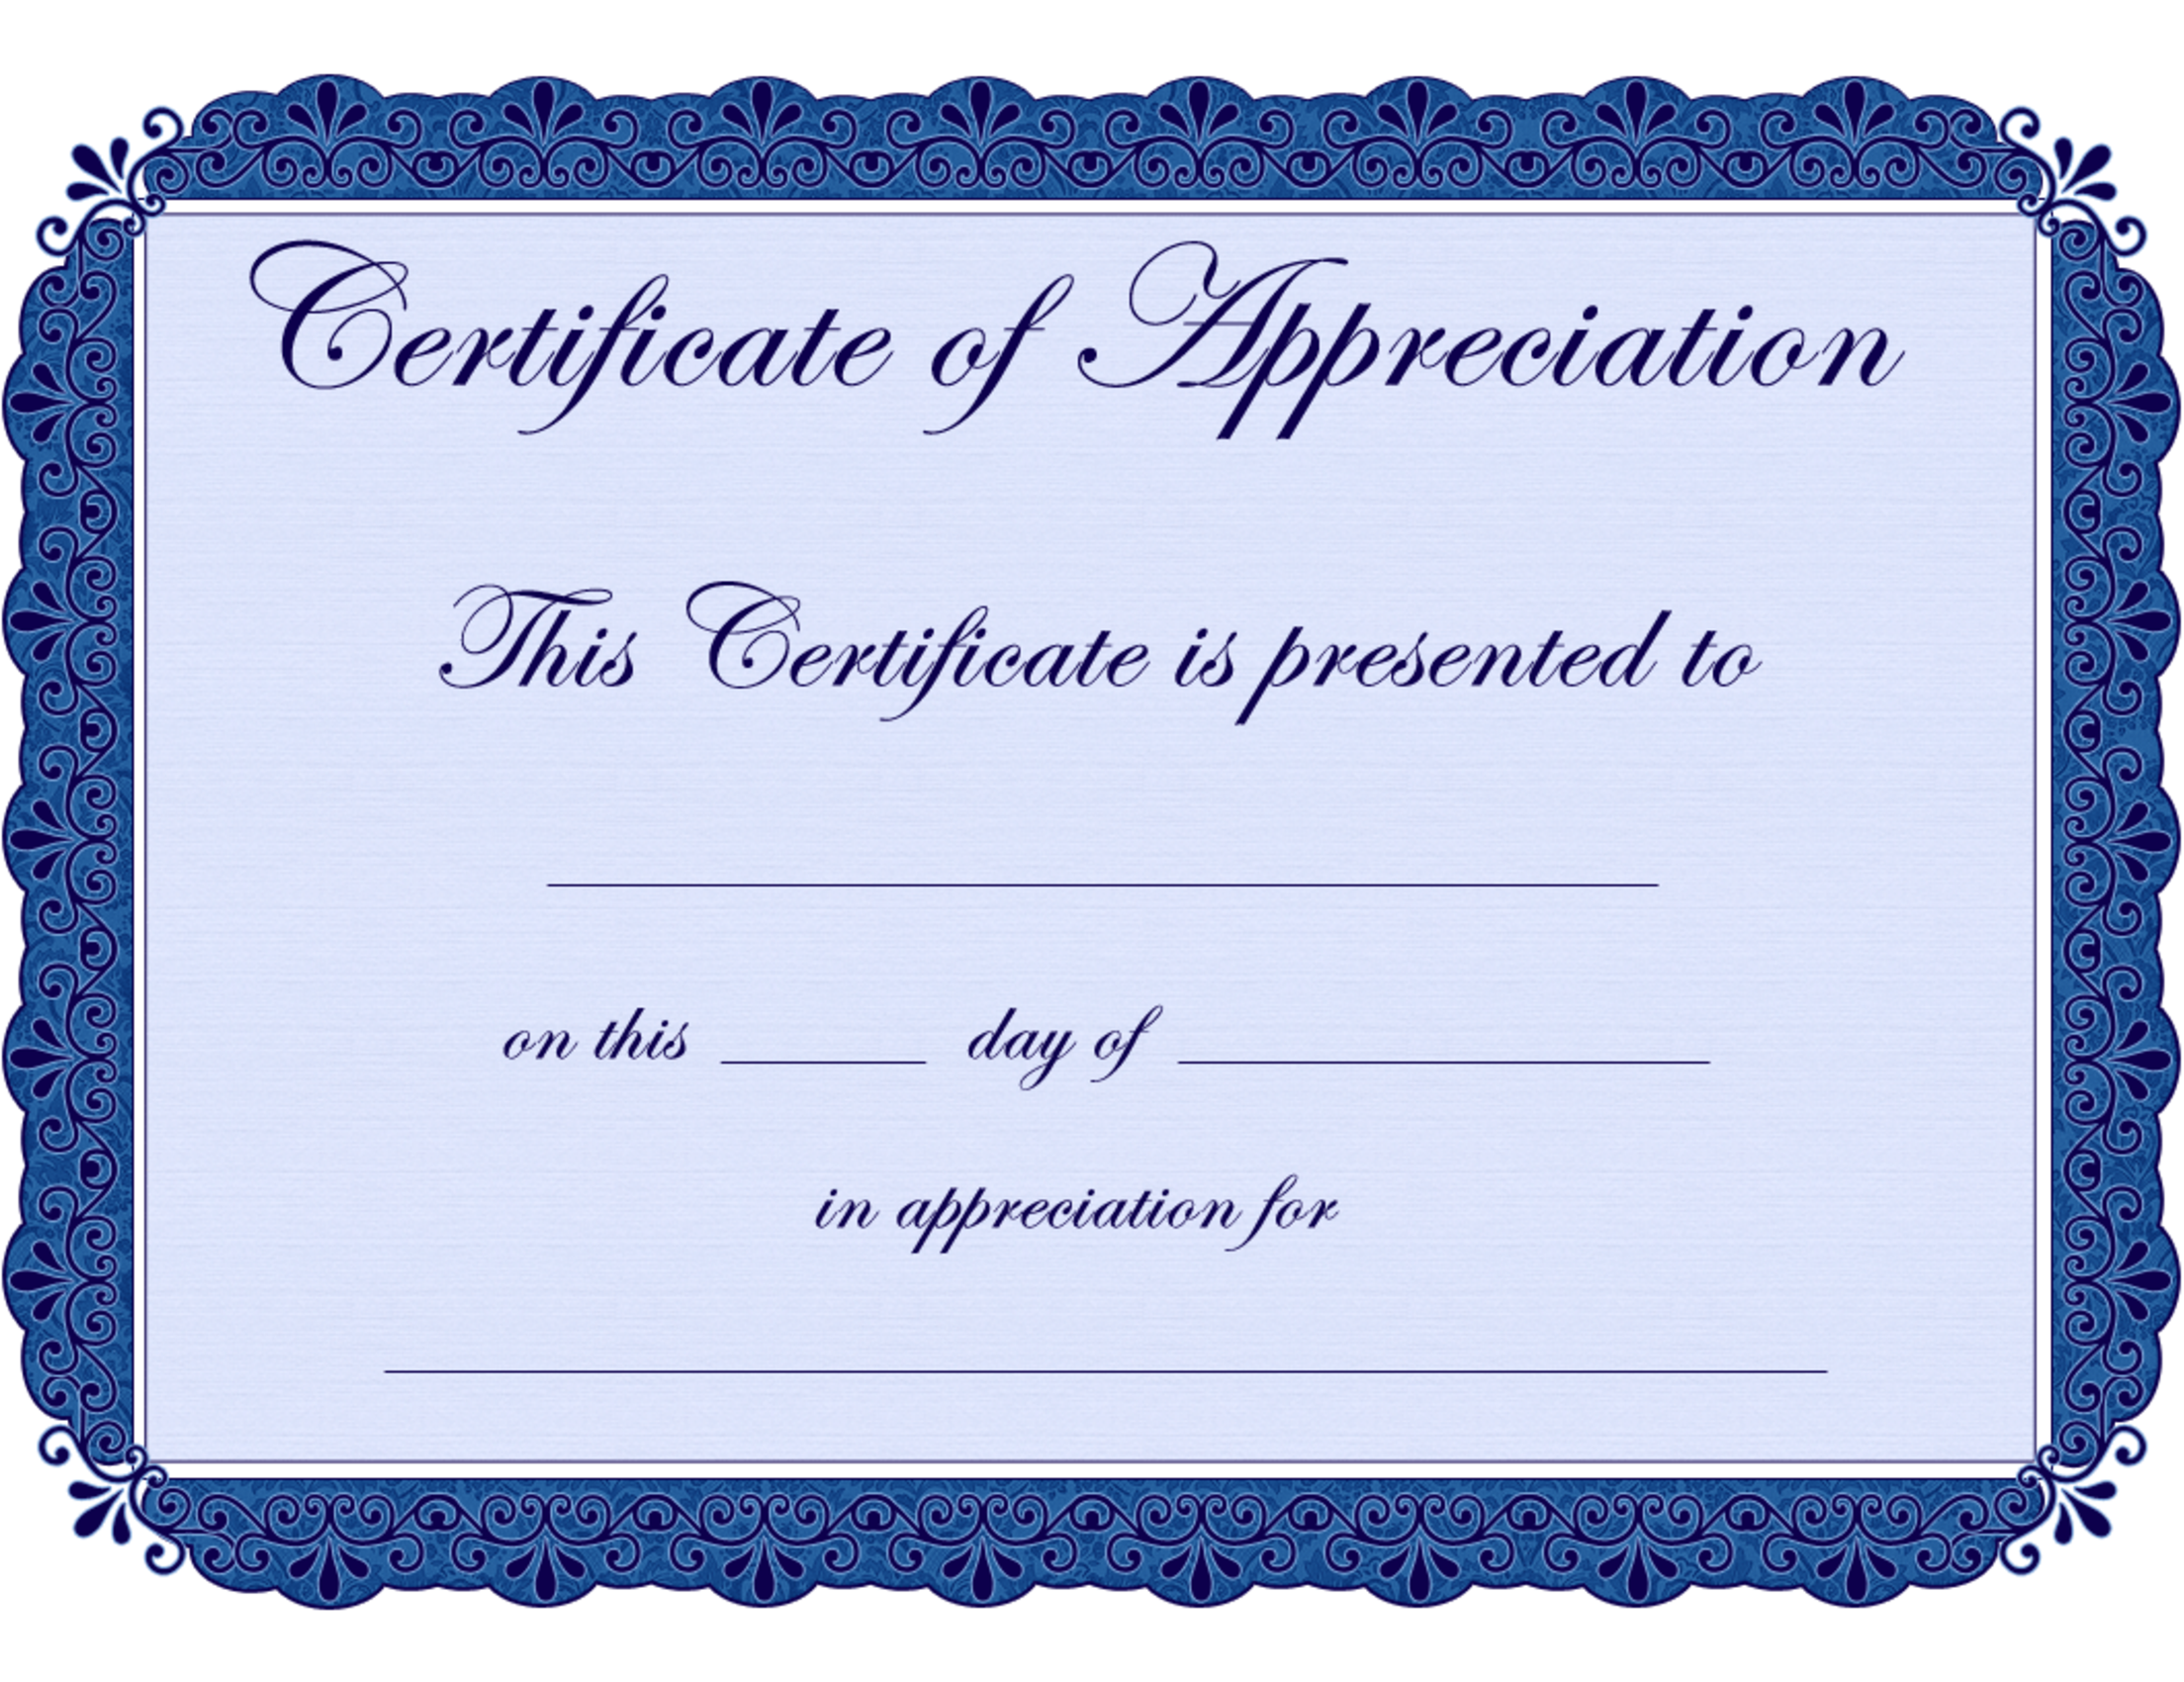 free printable certificates Certificate of Appreciation ...